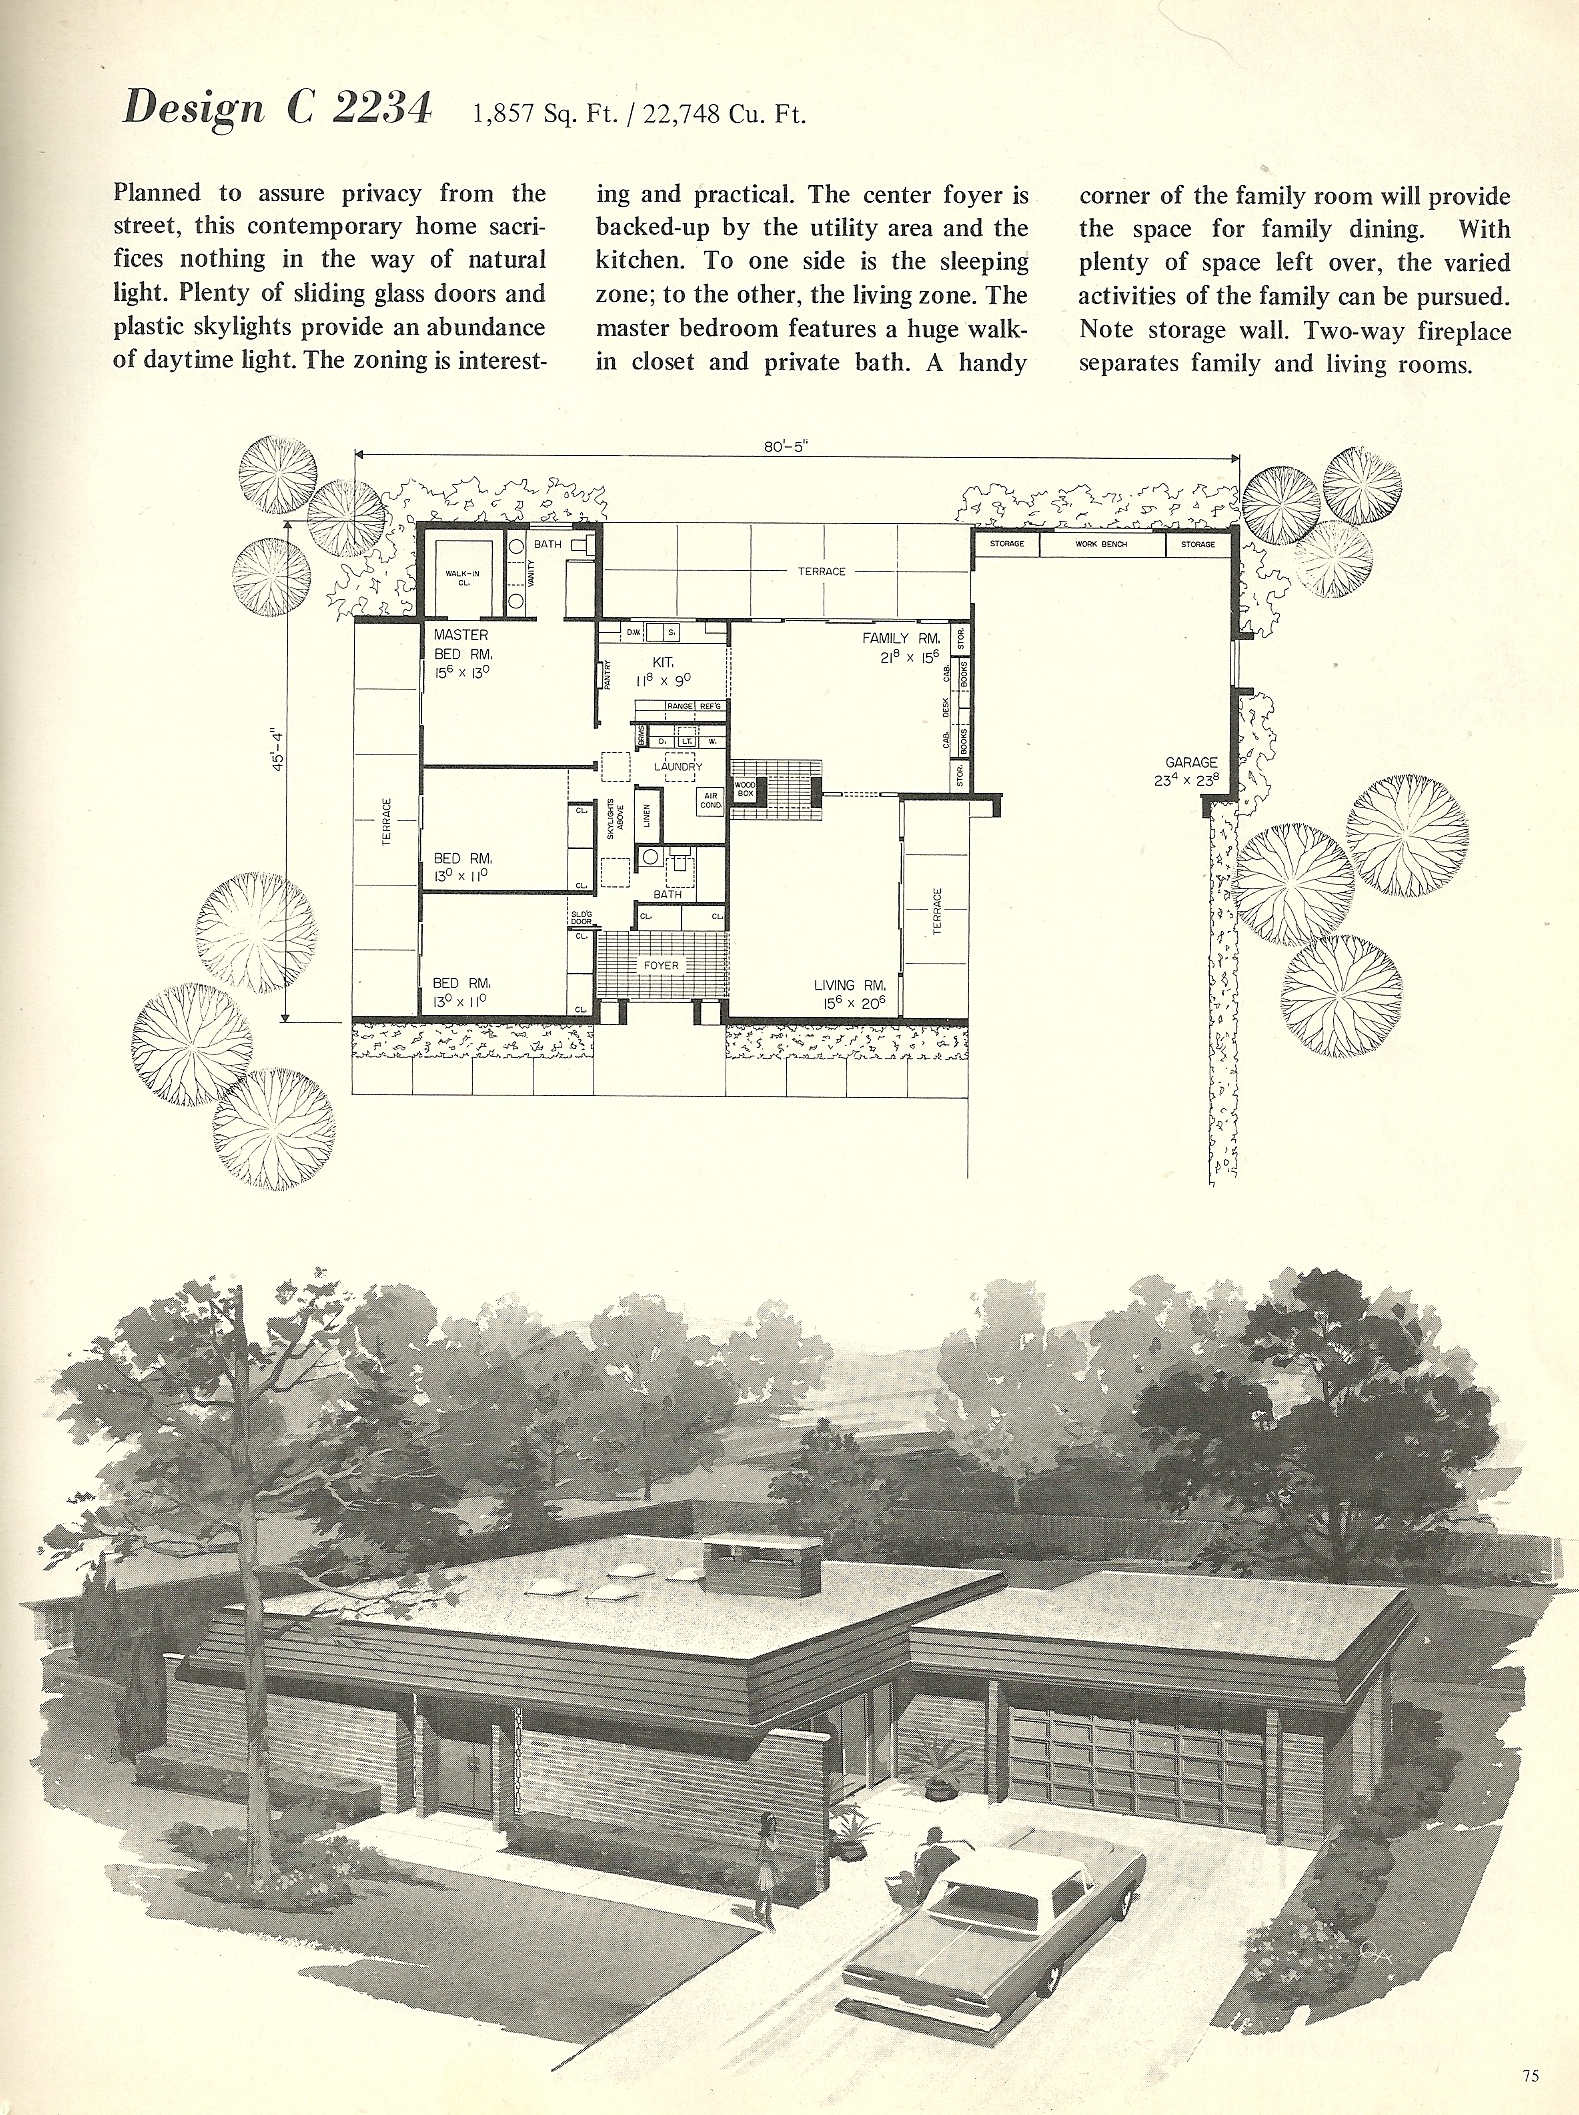 Vintage house plans 2234 antique alter ego for 1950s modern house design